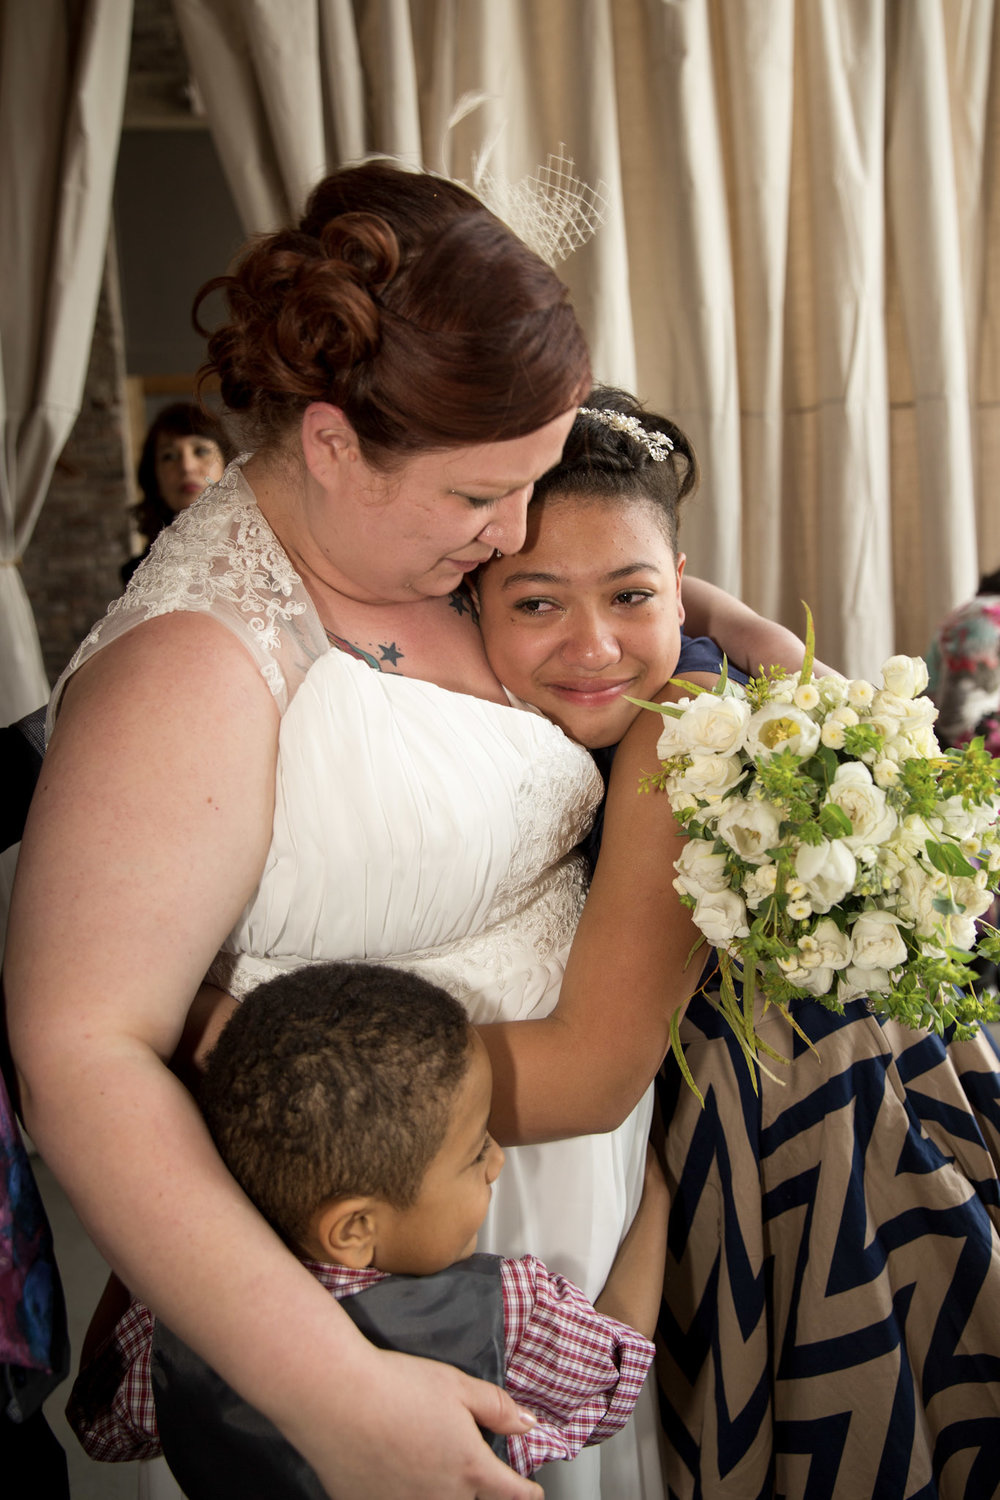 Kansas+City-Small+Wedding-Elope_Intimate_Ceremony_Mother's+Day_8.jpg